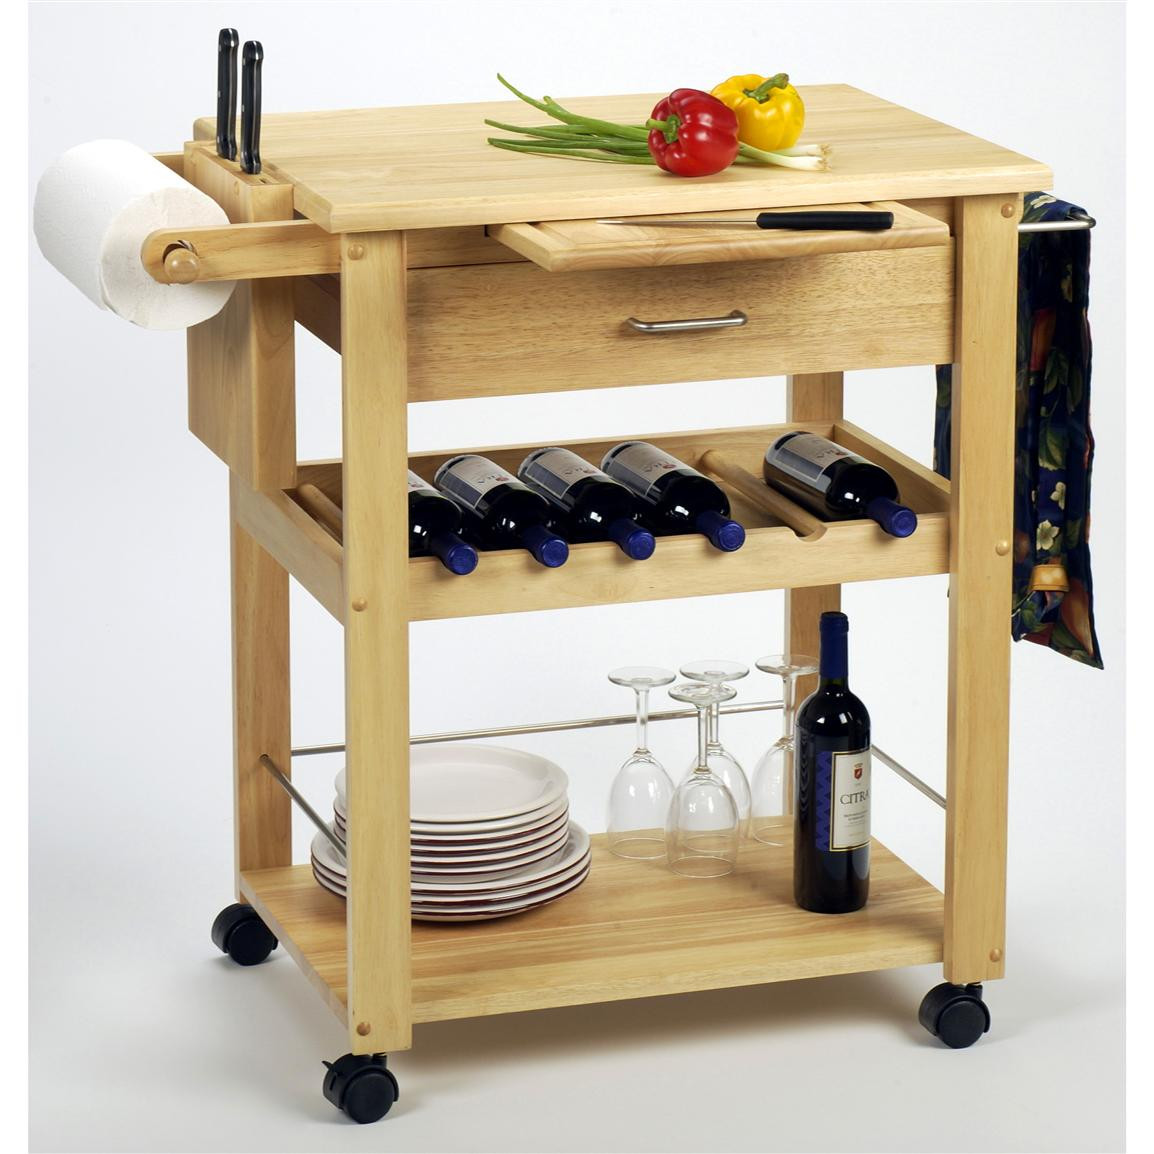 Best ideas about Kitchen Cart With Wine Rack . Save or Pin Winsome Beechwood Kitchen Cart with Wine Rack Now.